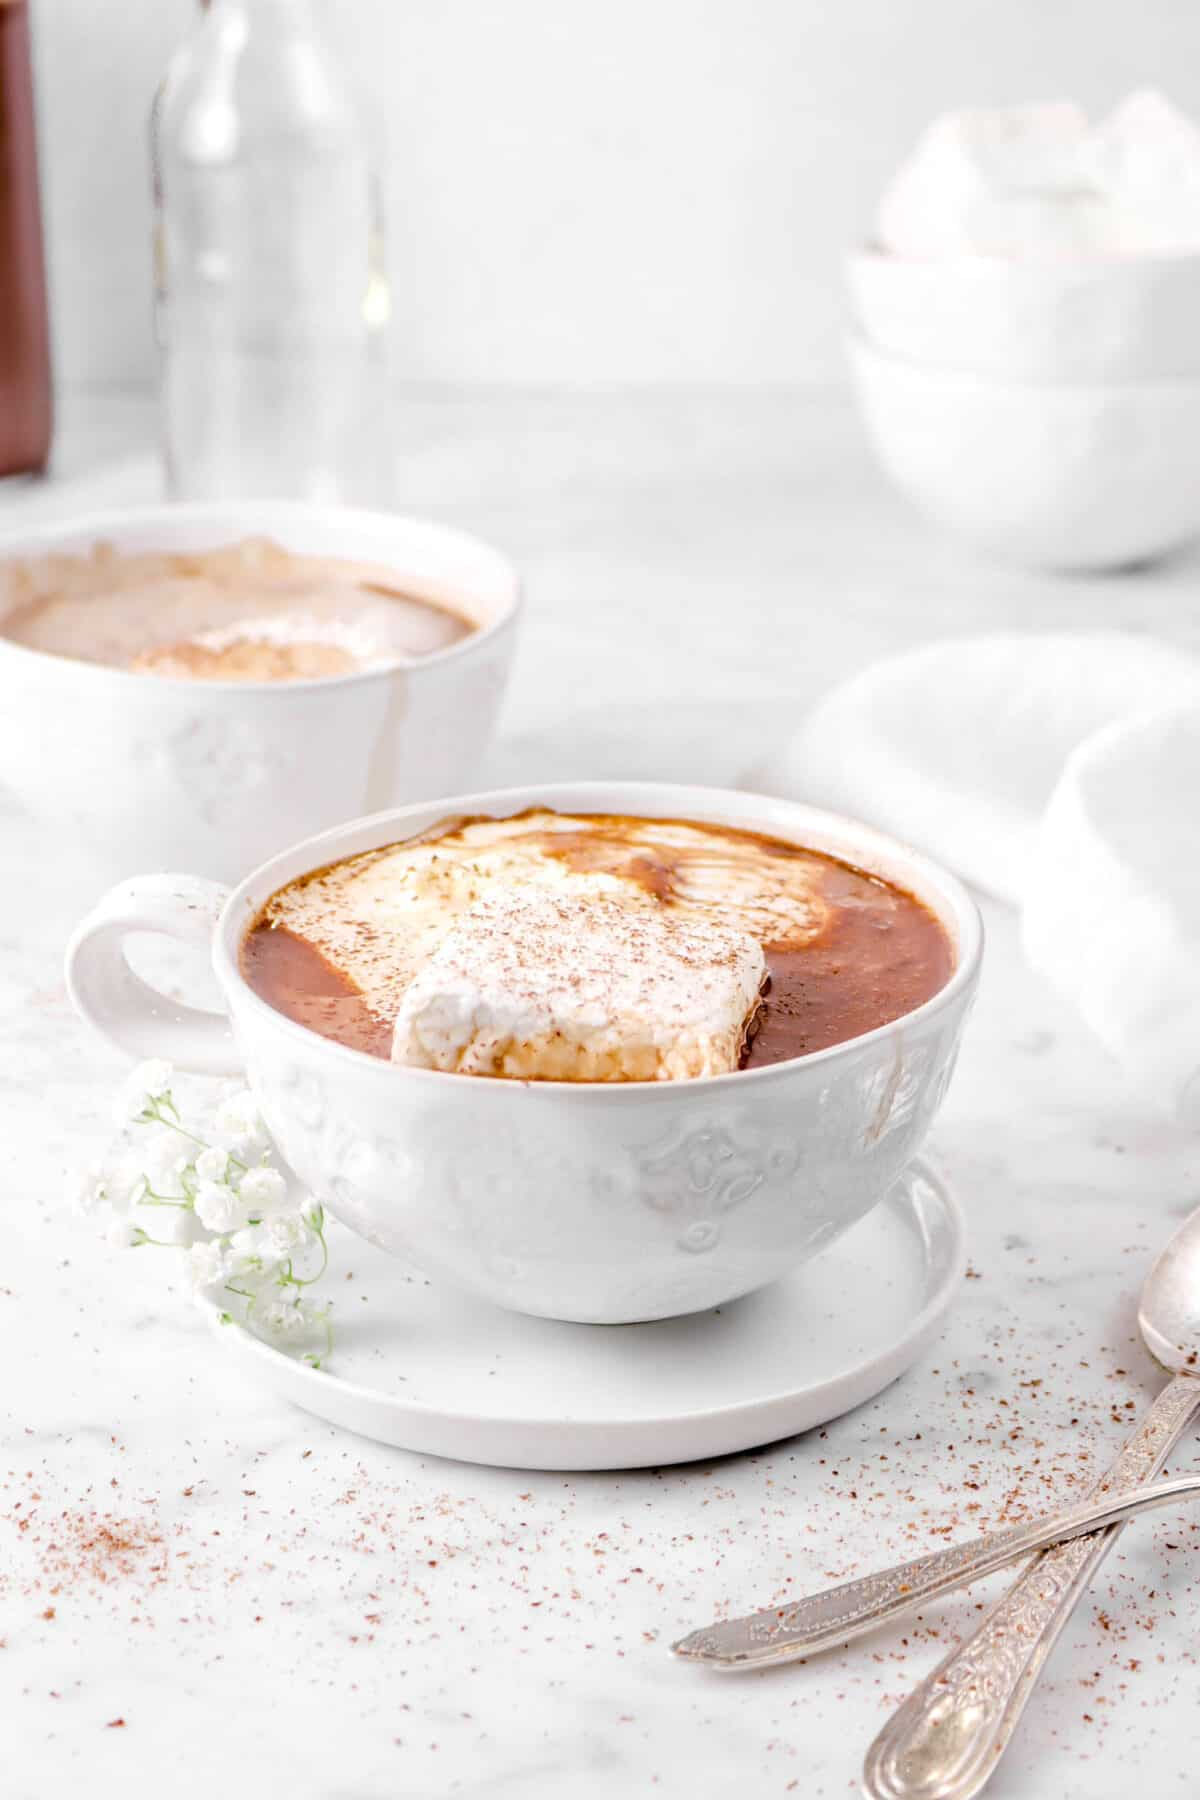 two mugs of hot chocolate on marble counter with two spoons and grated chocolate